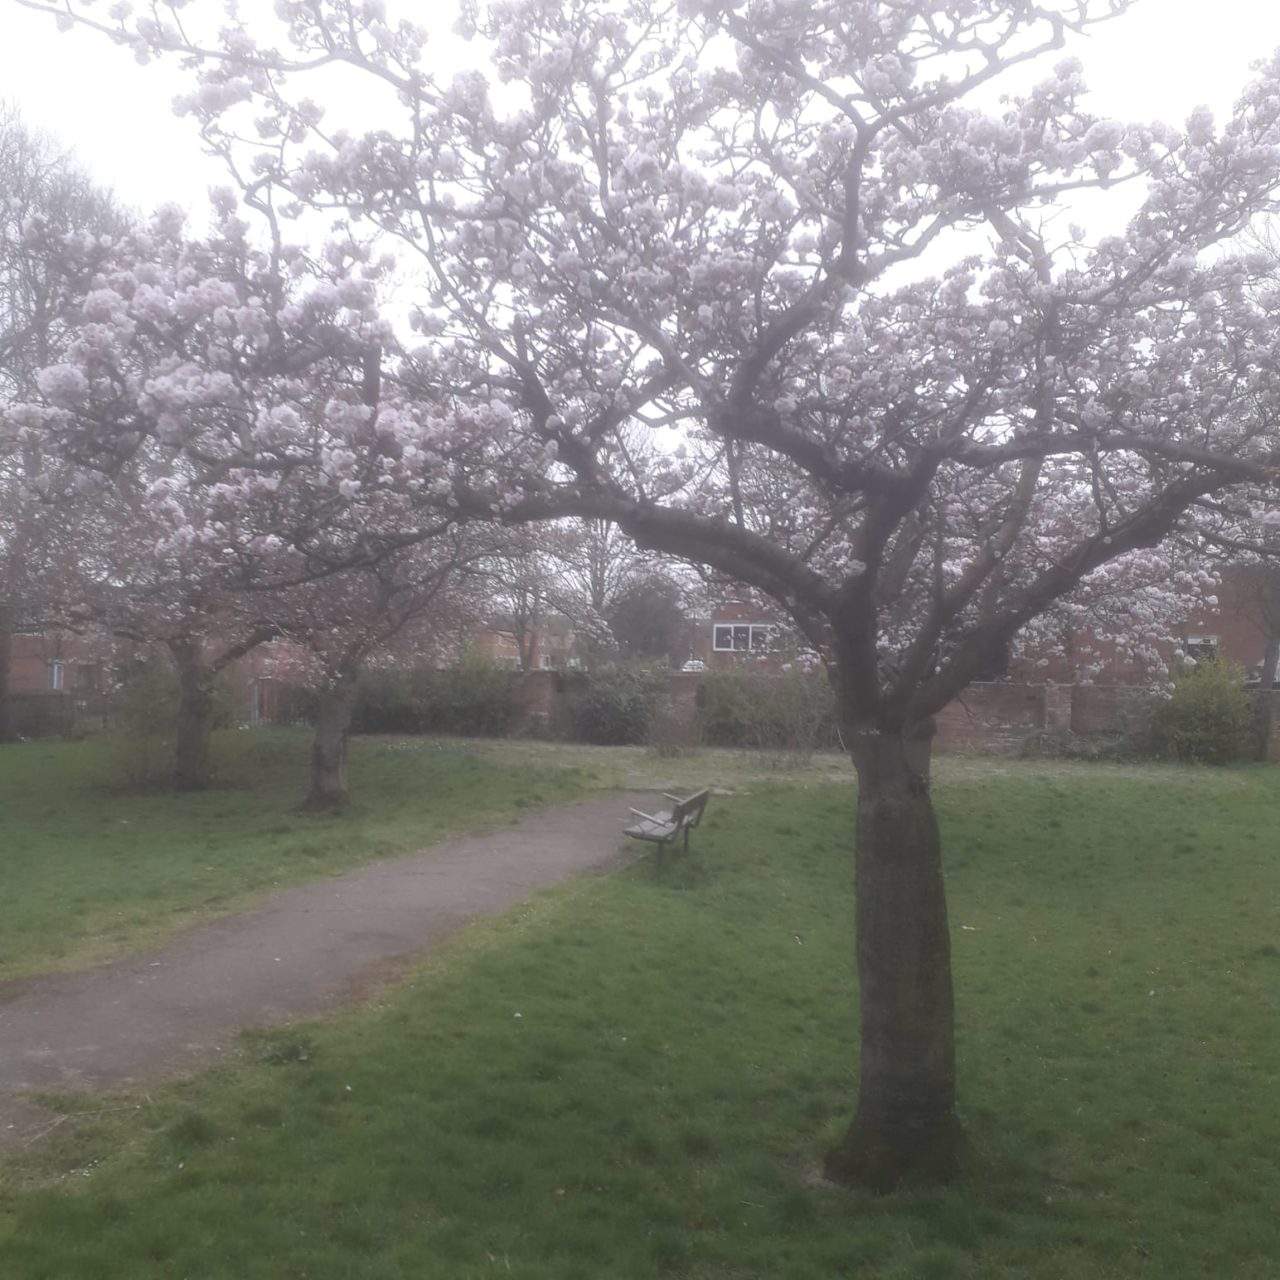 tree in full blossom and bench